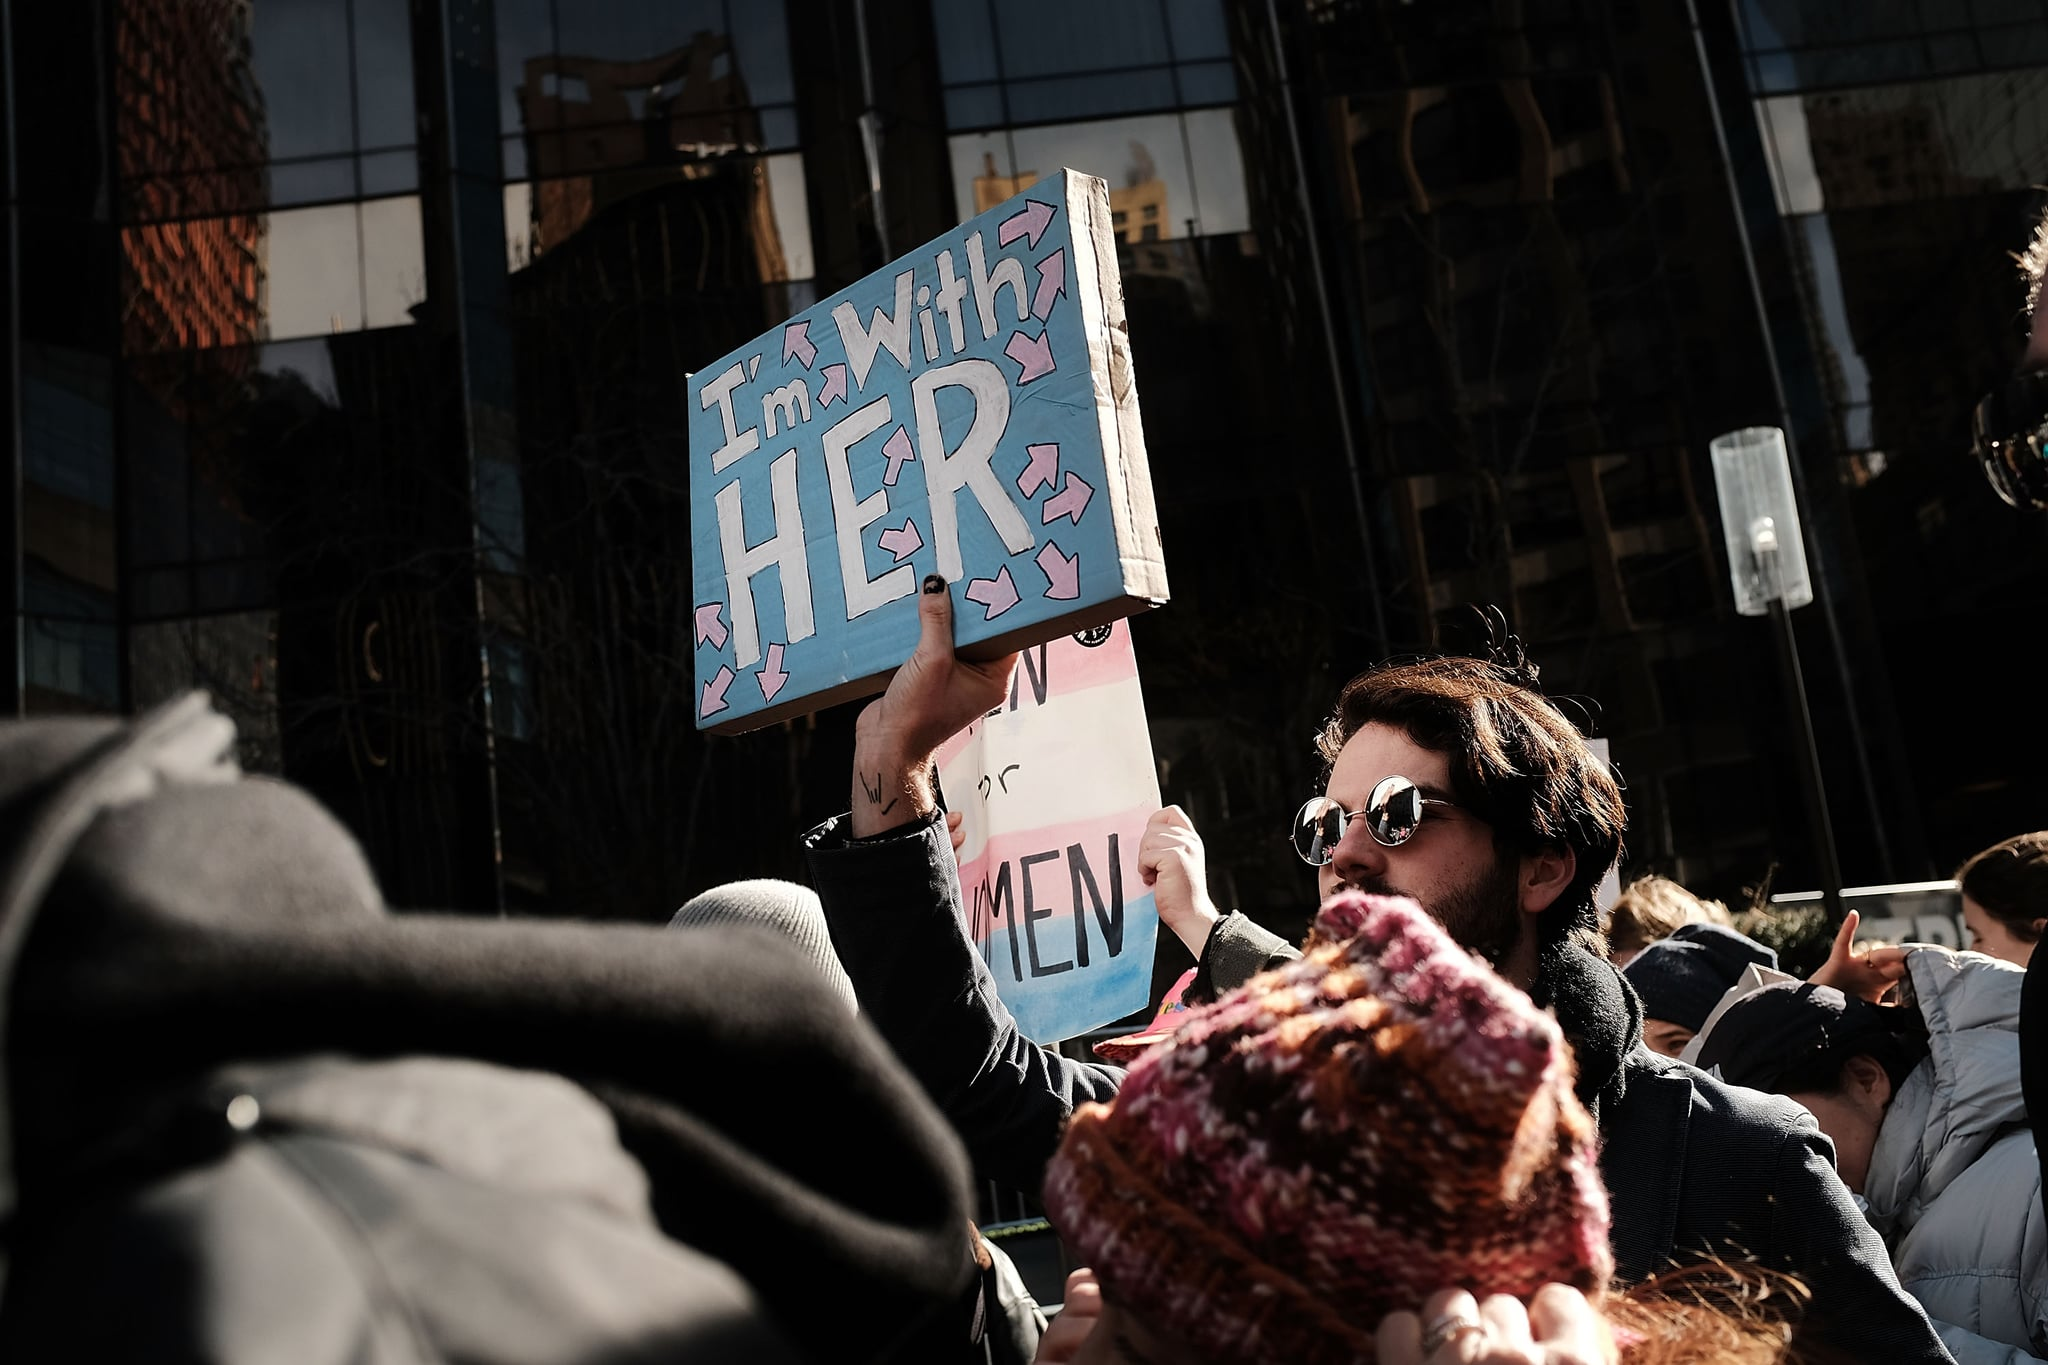 NEW YORK, NY - JANUARY 20:  Thousands of men and women hold signs and rally while attending the Women's March on January 20, 2018 in New York, United States. Across the nation hundreds of thousands of people are marching on what is the one-year anniversary of President Donald Trump's swearing-in to protest against his past statements on women and to celebrate Women's rights around the world.  (Photo by Spencer Platt/Getty Images)